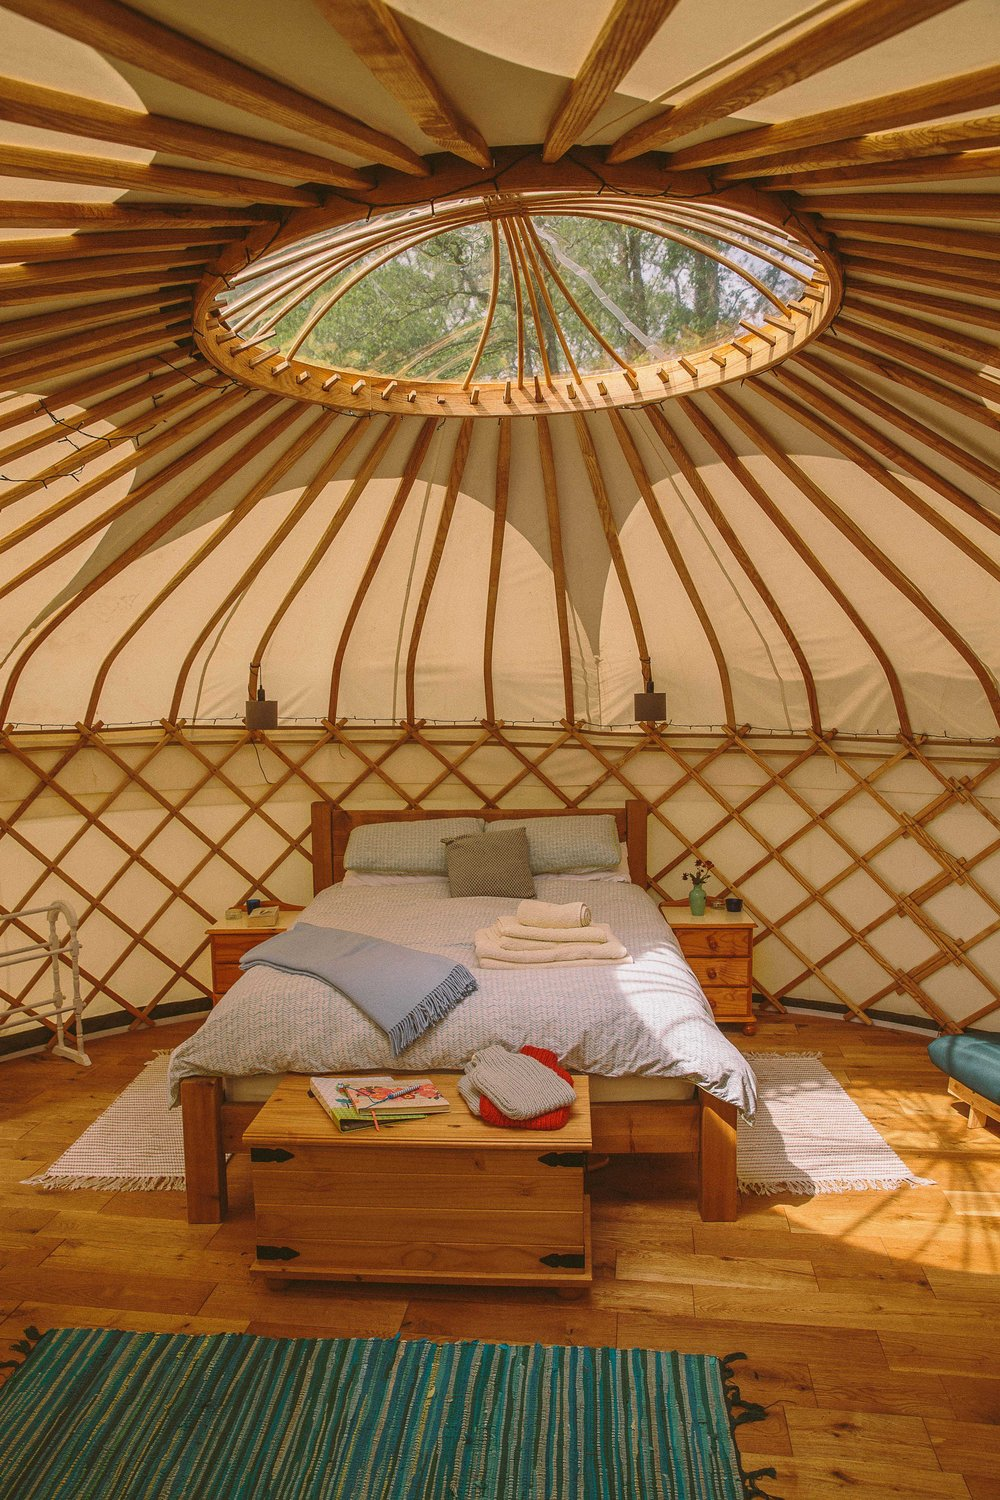 Inside Oak Tree Yurt with a sumptuous king size bed and yurt skylight